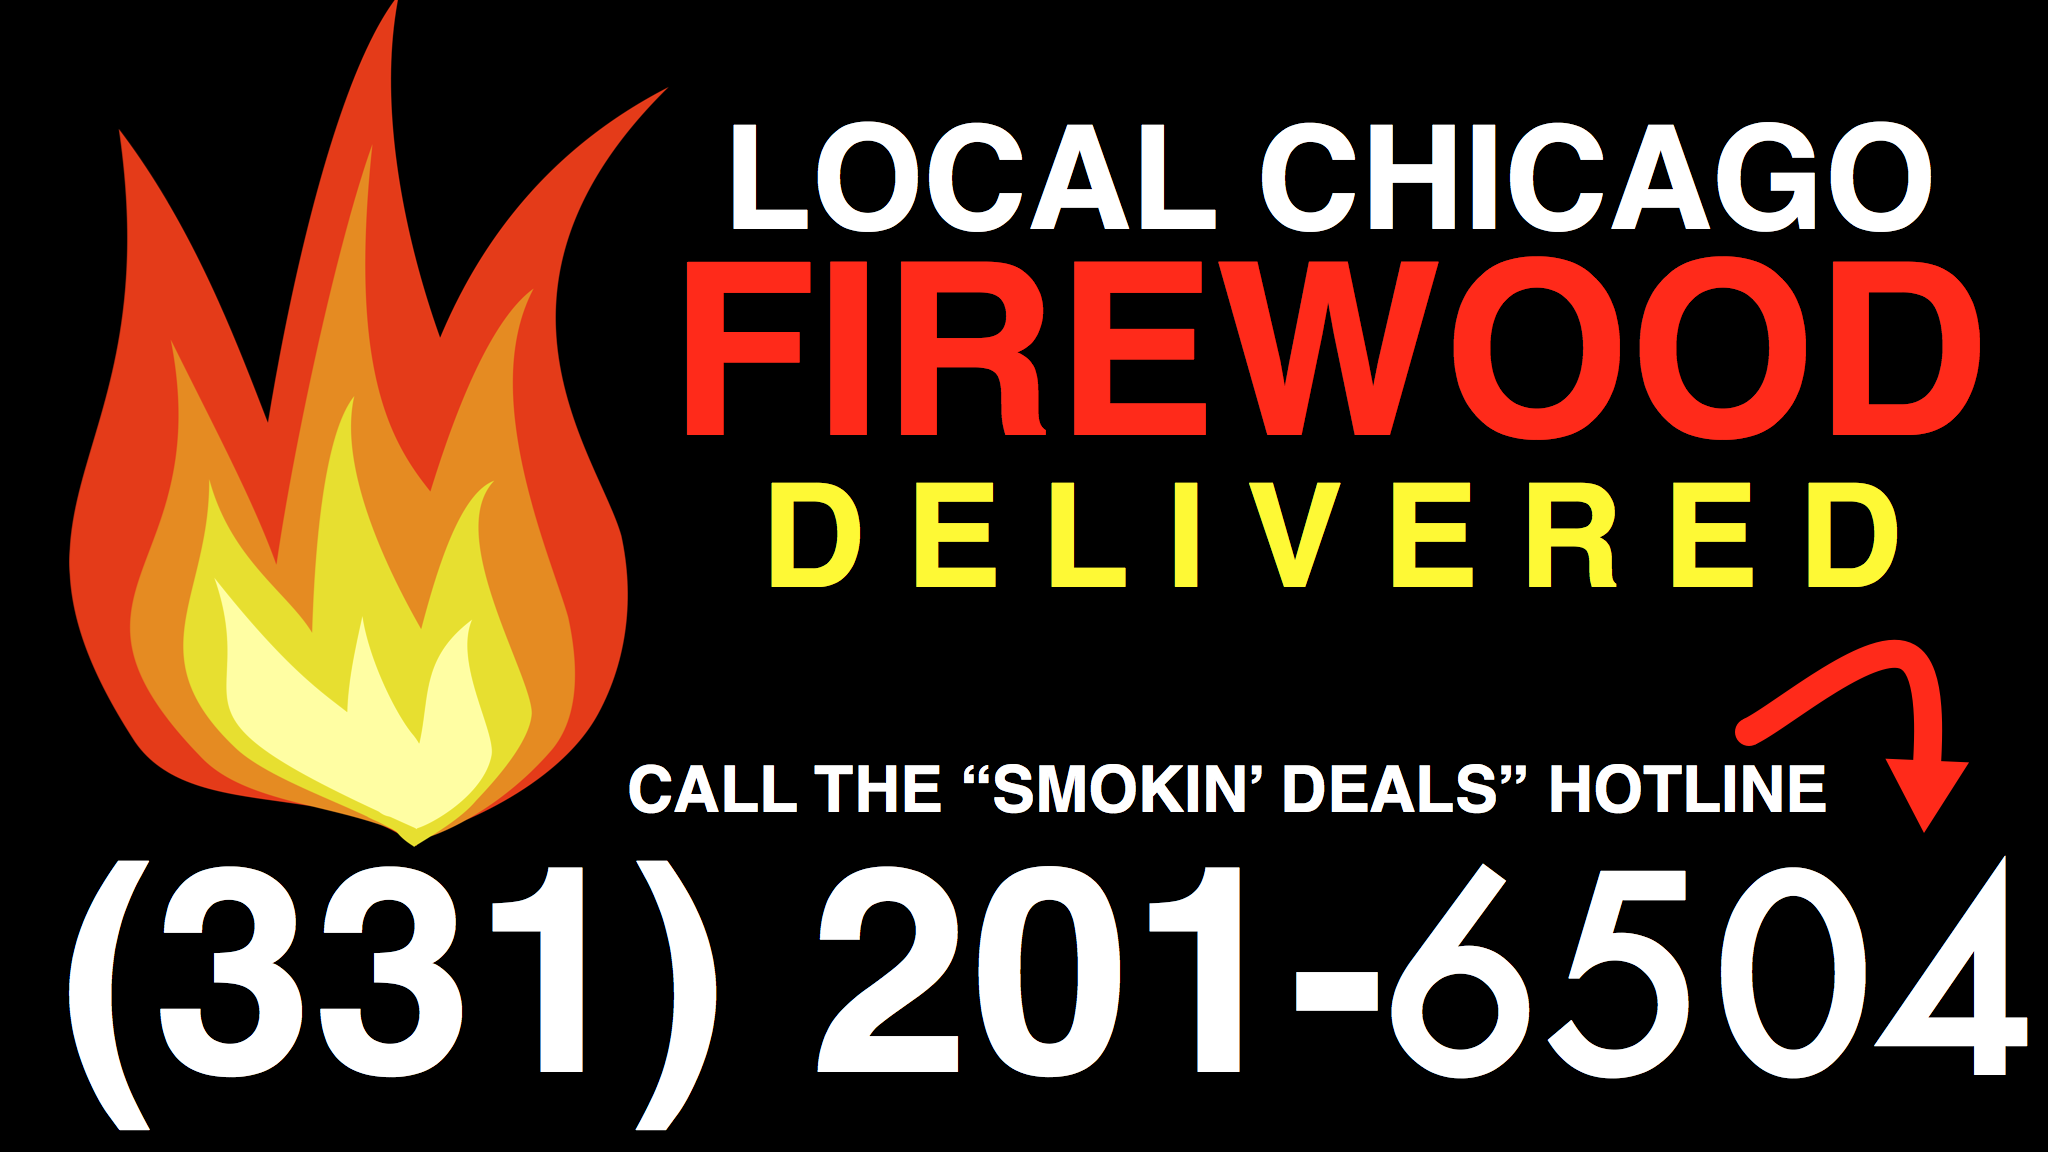 Chicago Firewood  Delivered HOTLINE 331-201-6504